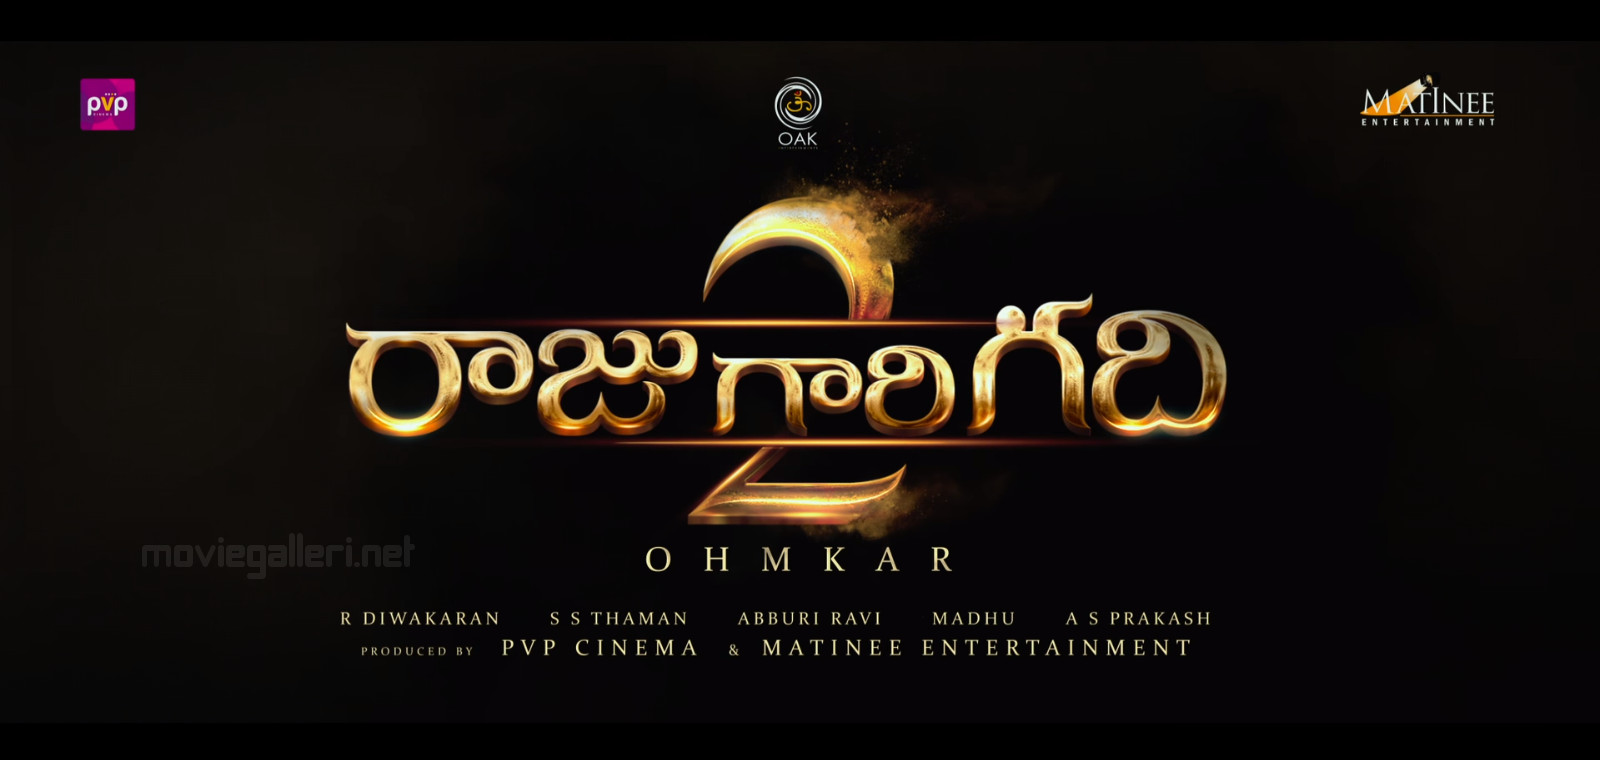 Simple Wallpaper Logo Raju - Raju-Gari-Gadhi-2-Title-Logo-Wallpaper  Graphic_43223.jpg